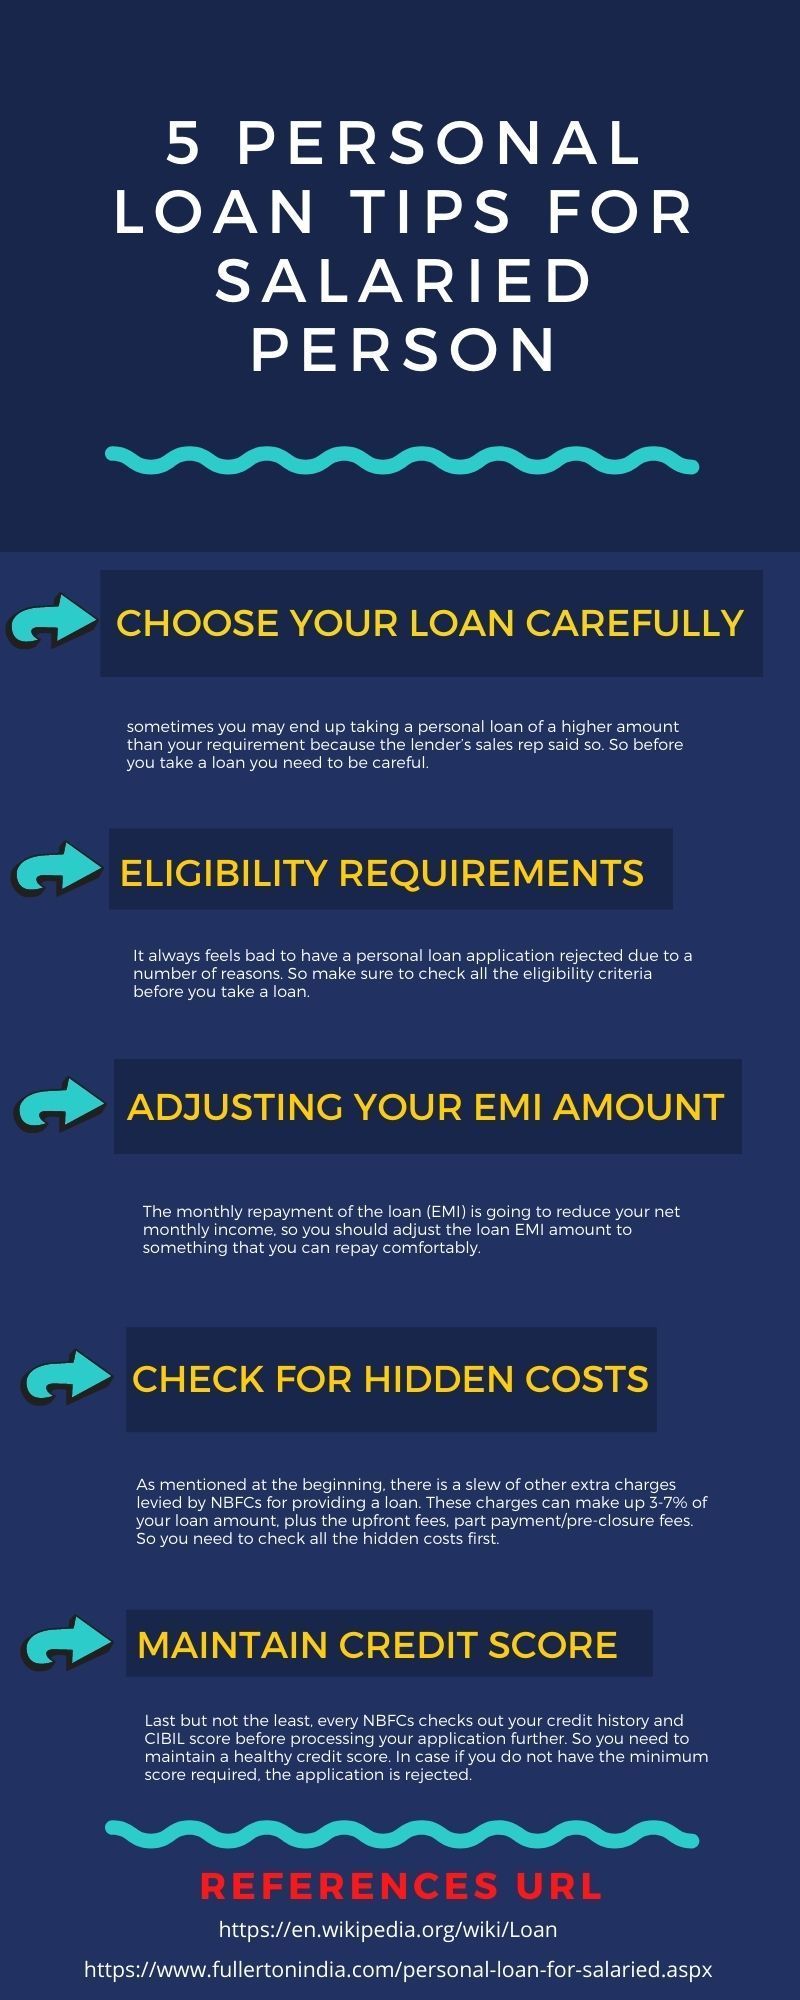 Apply Today For An Integra Credit Personal Loan New Customers Must Complete A Quick Online Form Checking Your L Personal Loans Credit Worthiness How To Apply